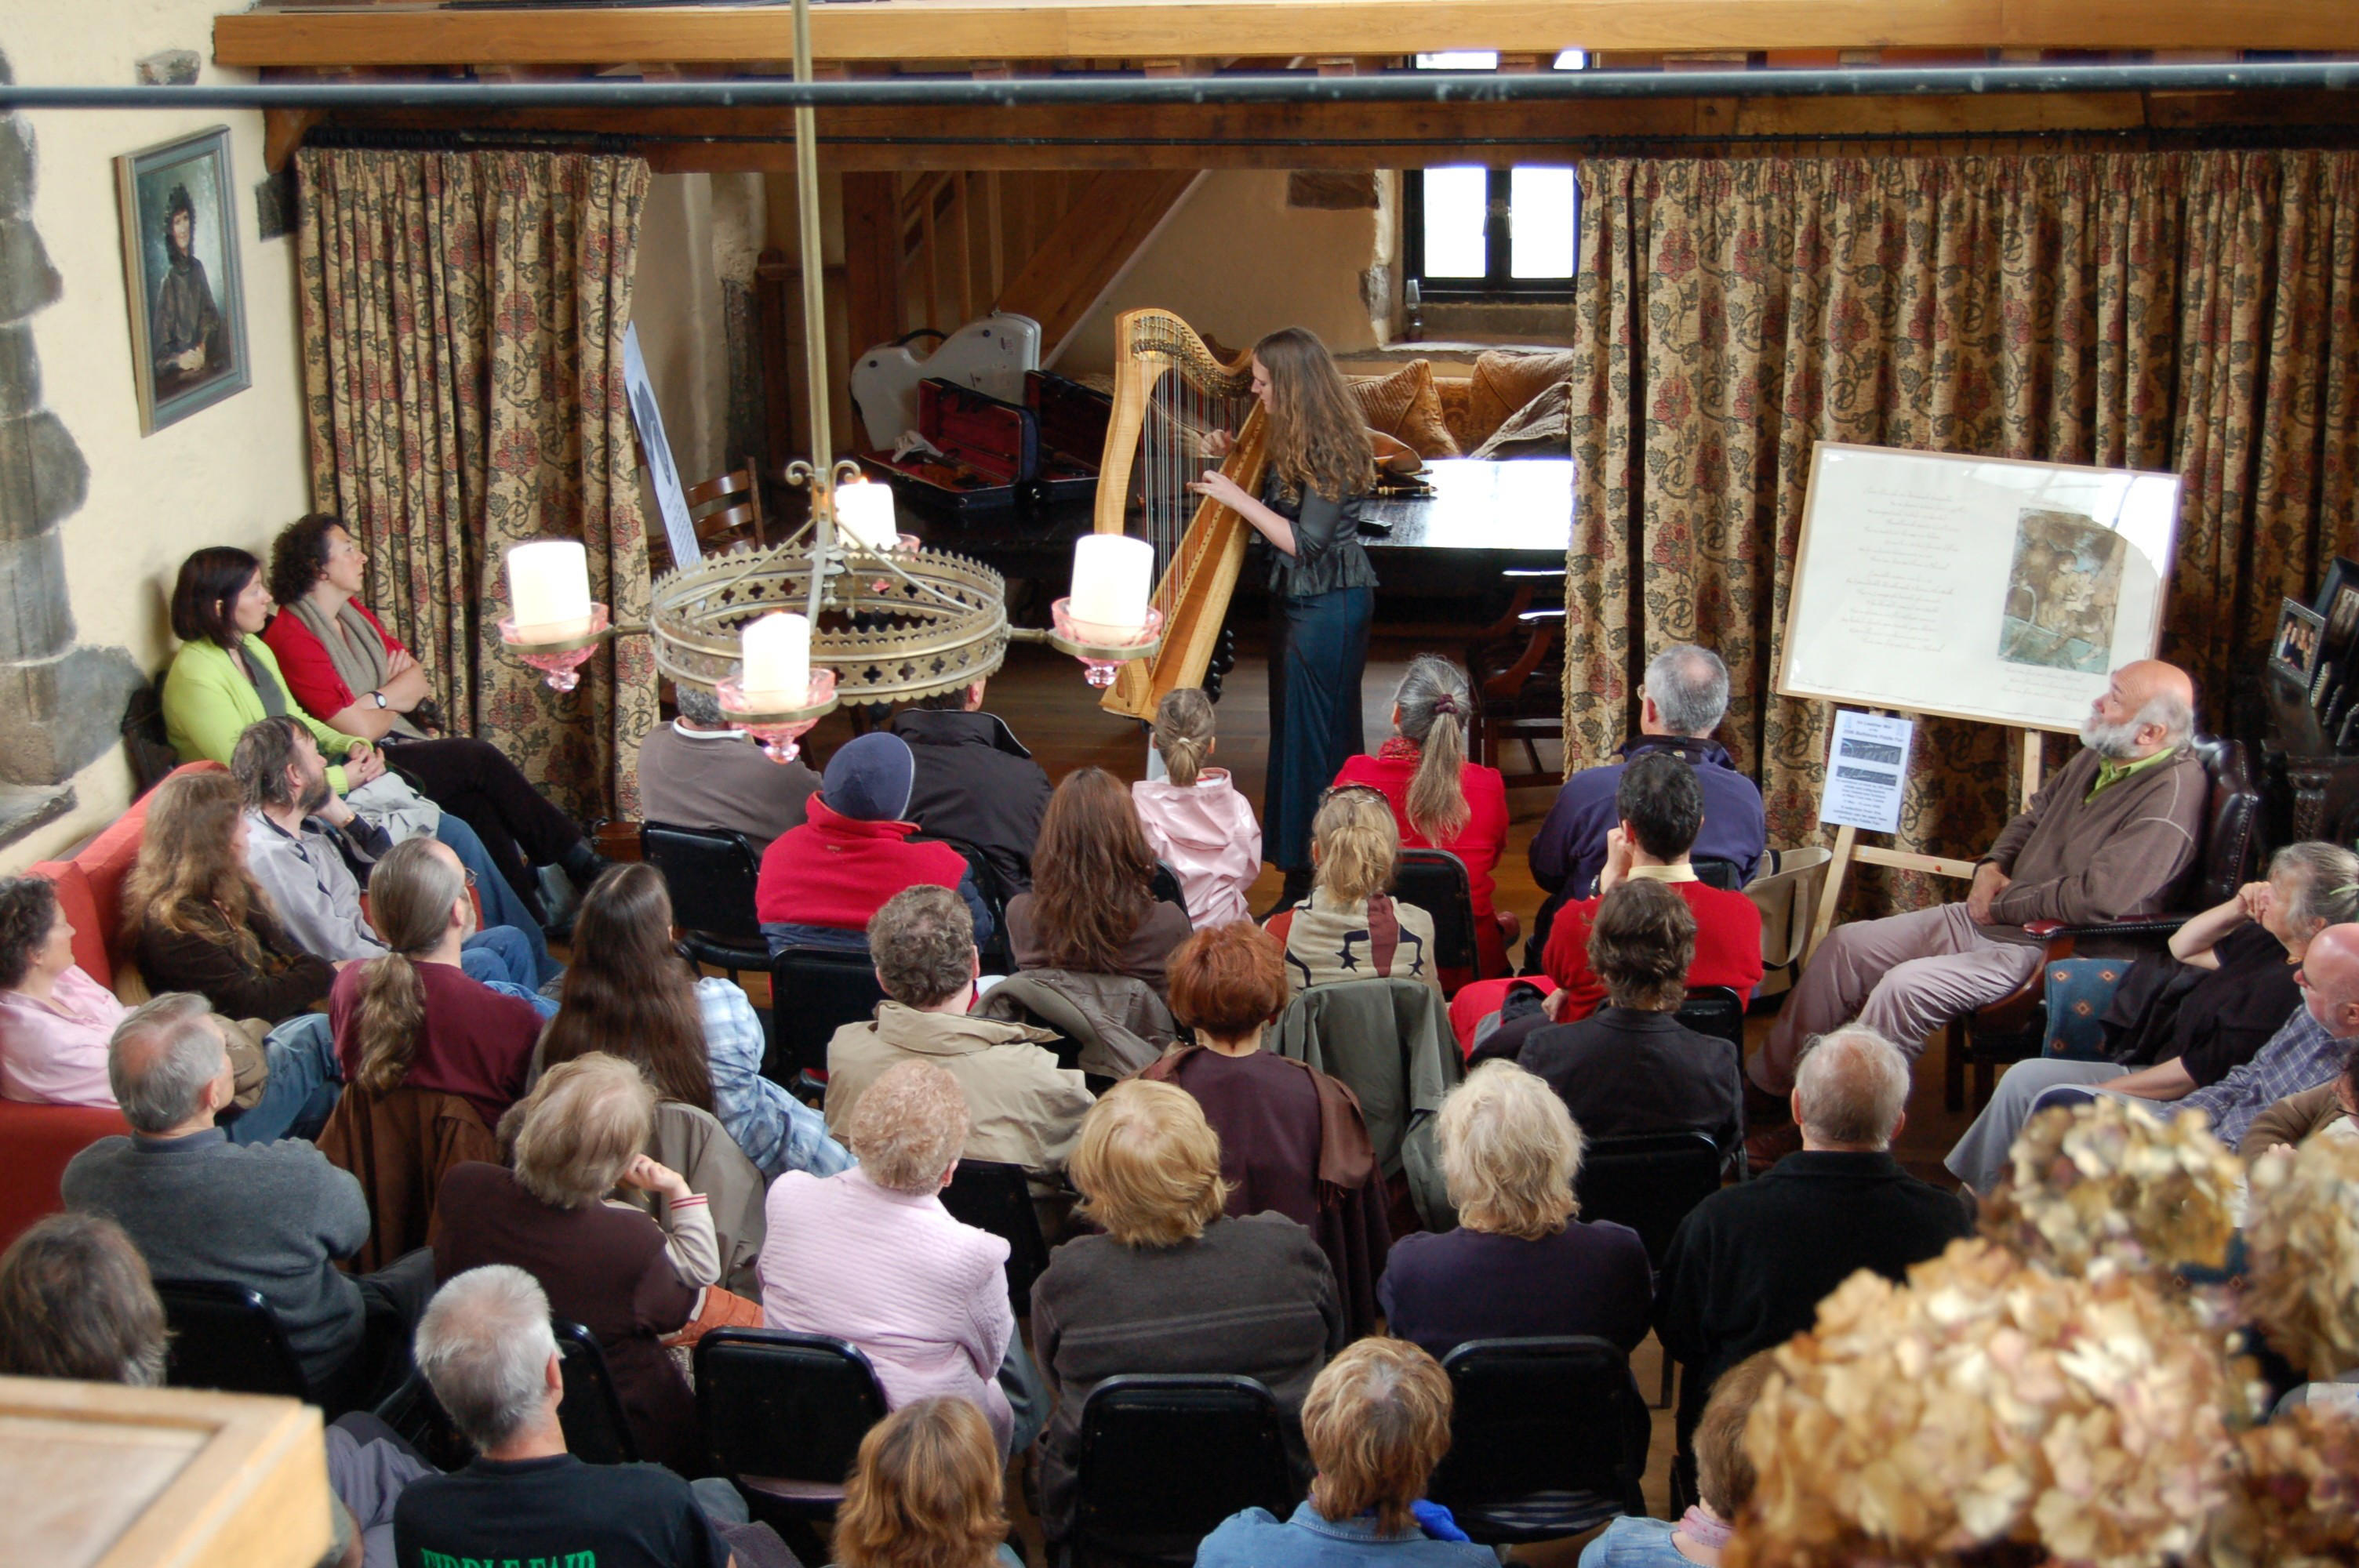 Harpist playing in the great hall